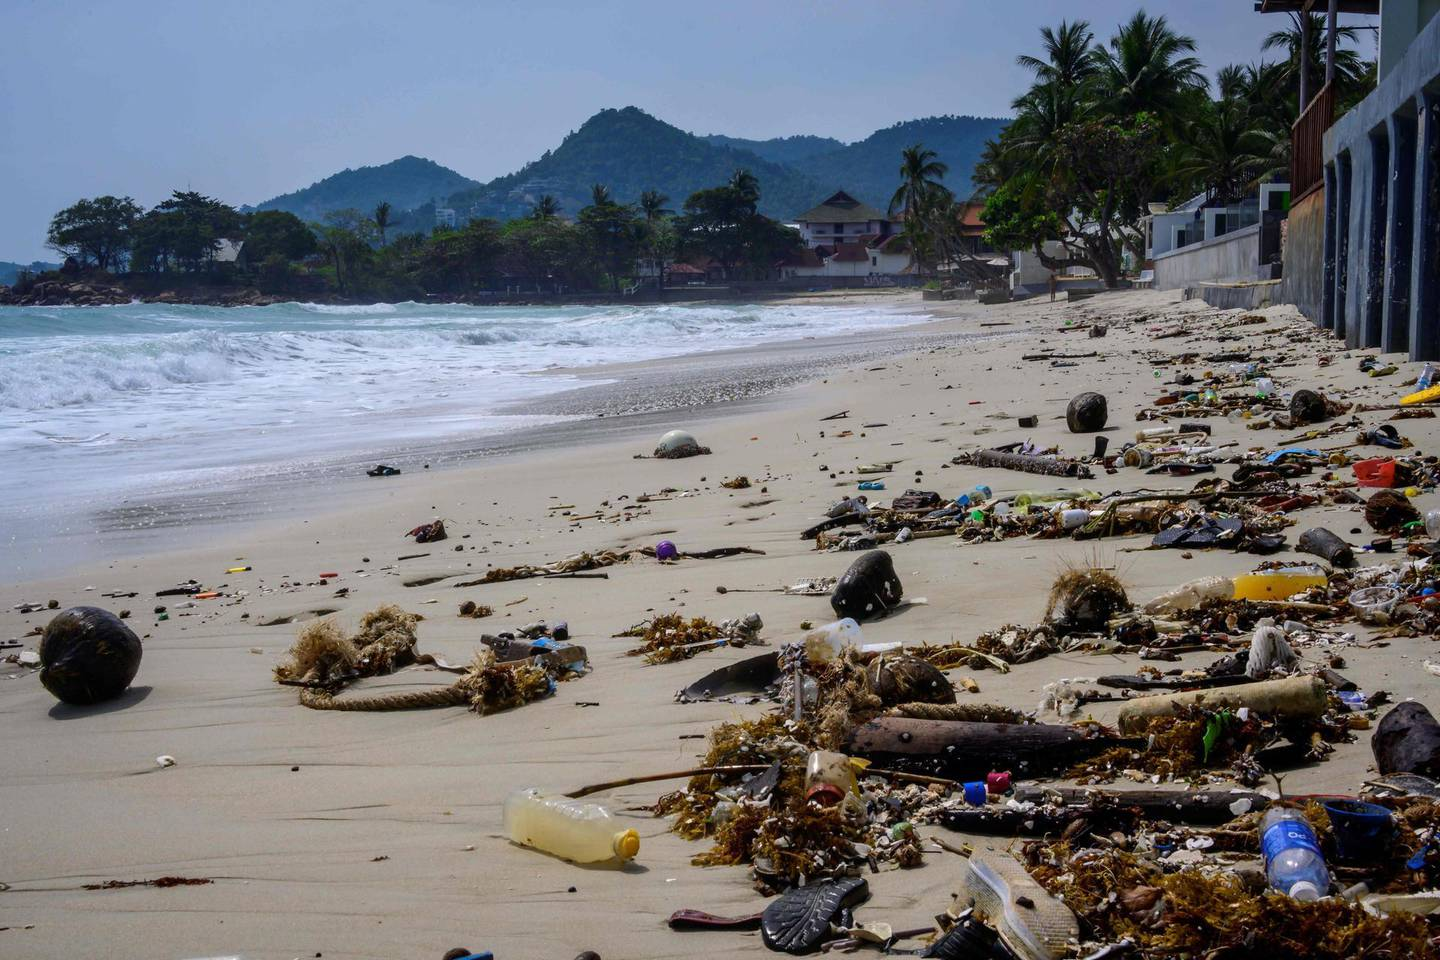 Plastic waste and other rubbish is pictured after washing up on a beach in Koh Samui in the Gulf of Thailand on January 19, 2021. / AFP / Mladen ANTONOV